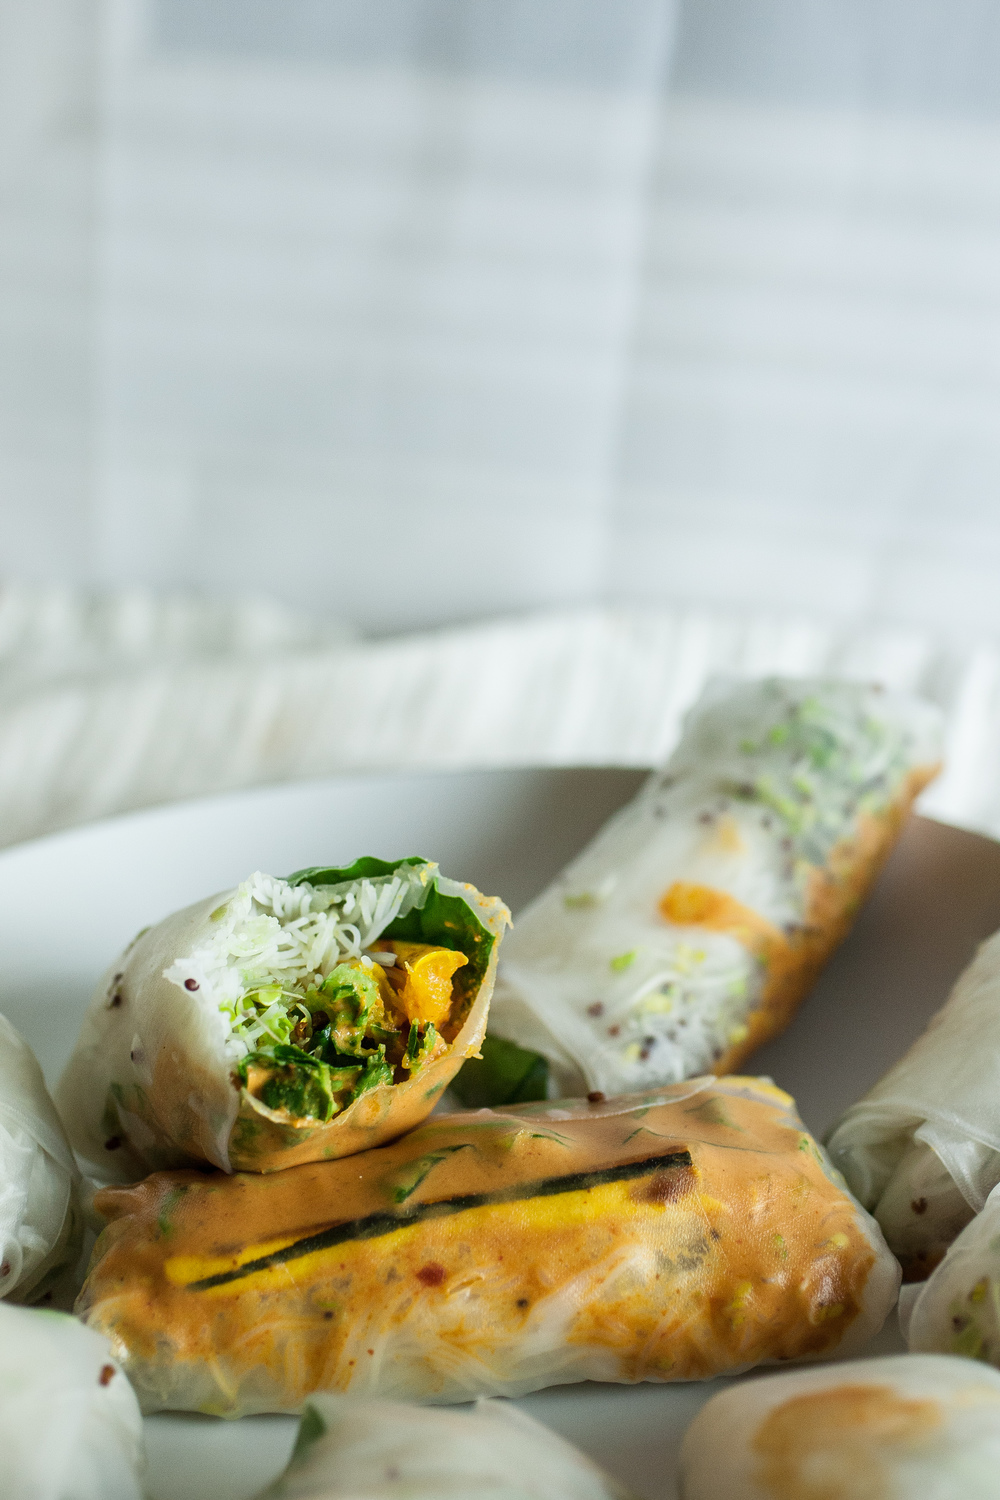 Produce On Parade - Delicata Spring Rolls - The peel of a delicata squash is perfectly edible and tender, which makes them a perfect partner in these fresh rolls, nestled between avocado, rice noodles, and chard. Dip them in my creamy red curry sauce.